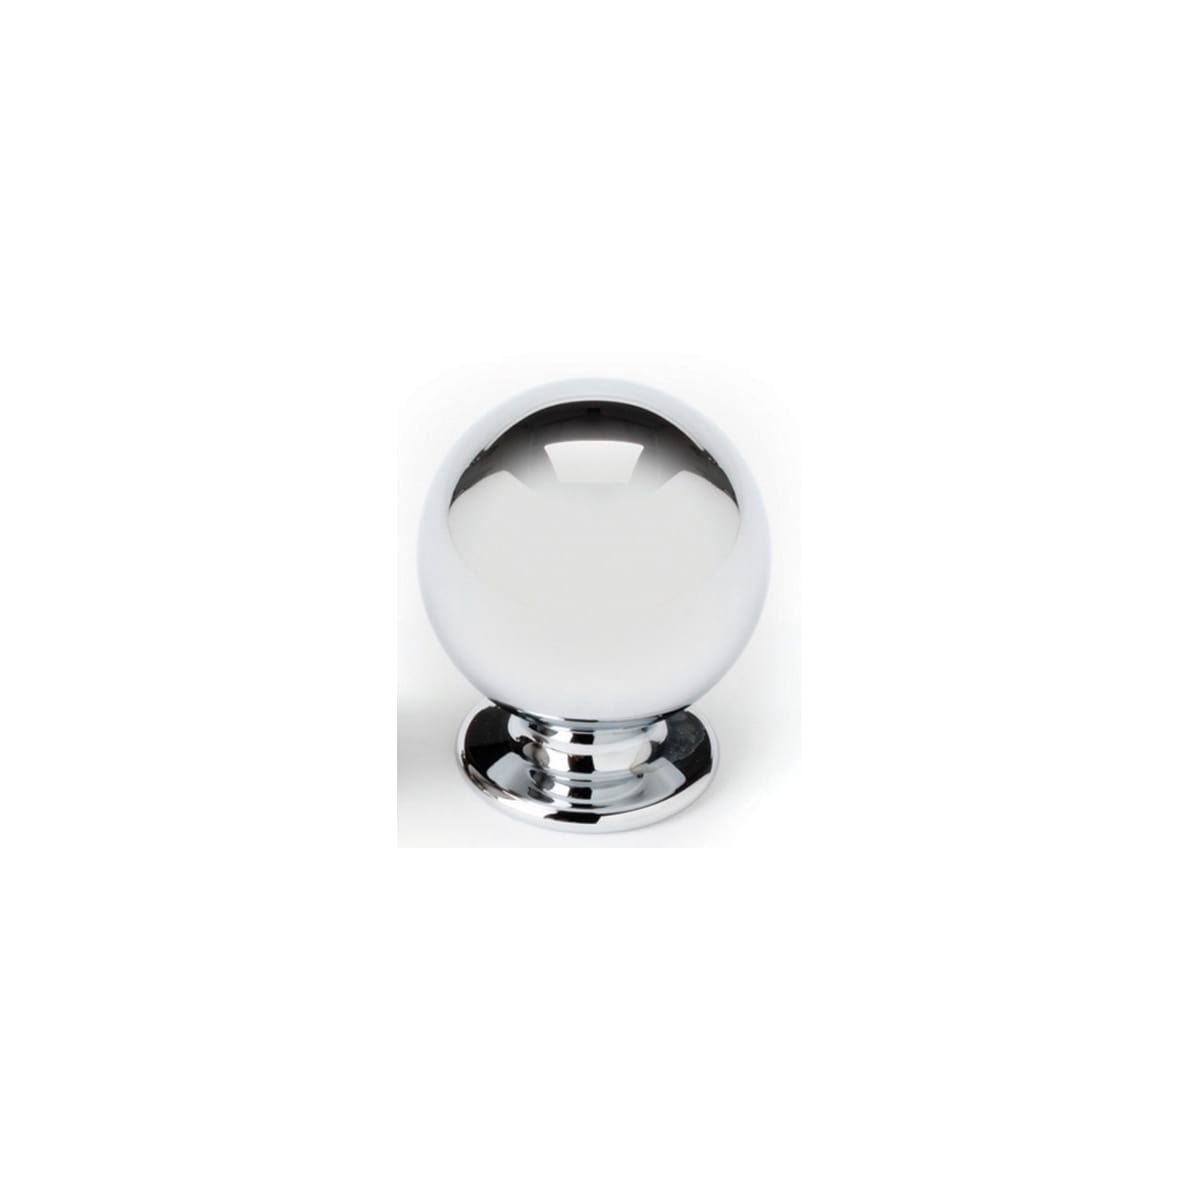 Model: A1030-PC | Alno Knobs 5/8 Inch Round Cabinet Knob